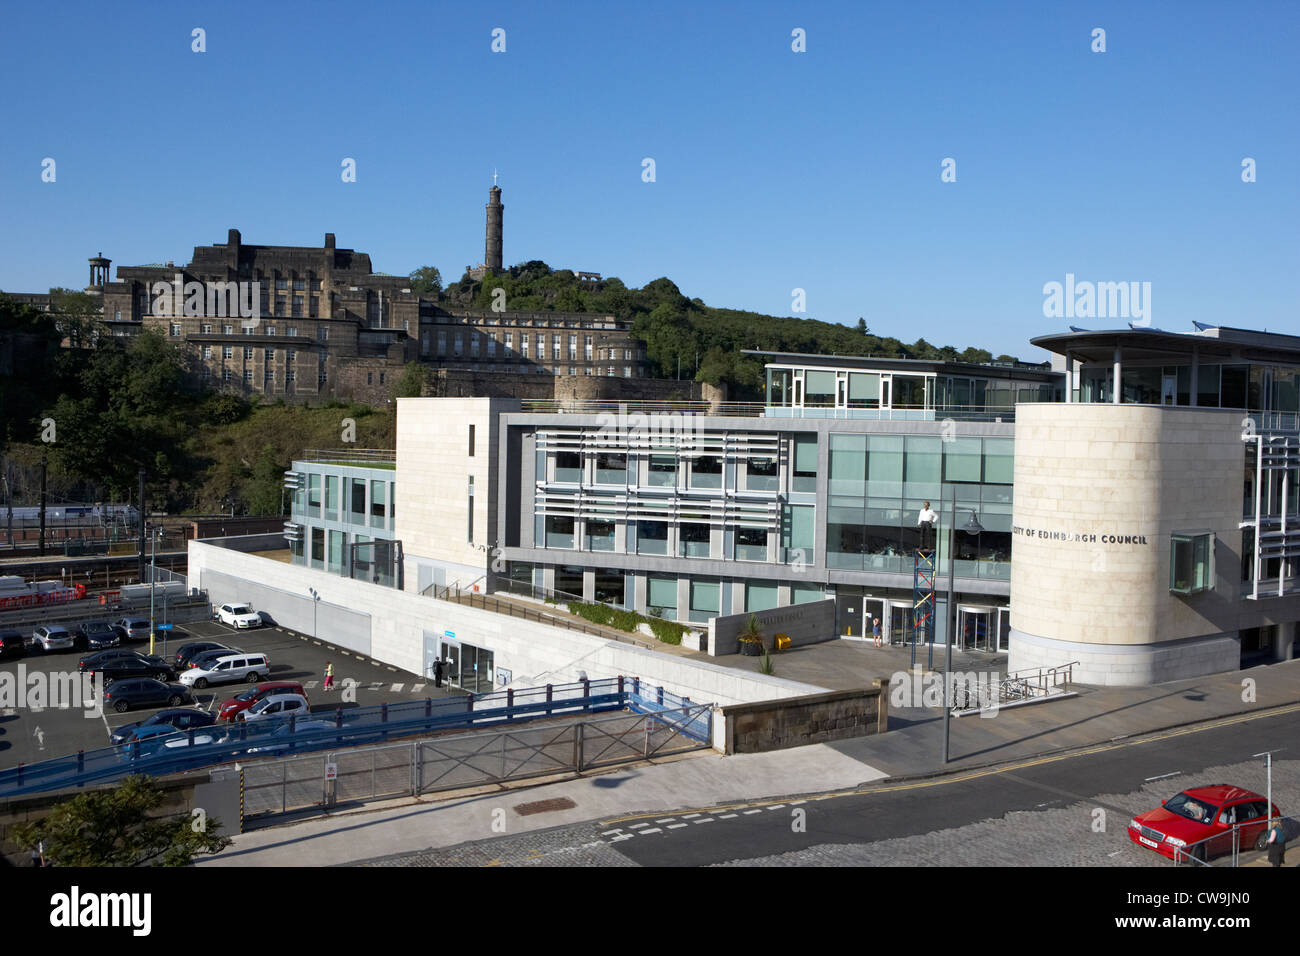 city of edinburgh council administrative headquarters waverley court edinburgh scotland uk united kingdom - Stock Image